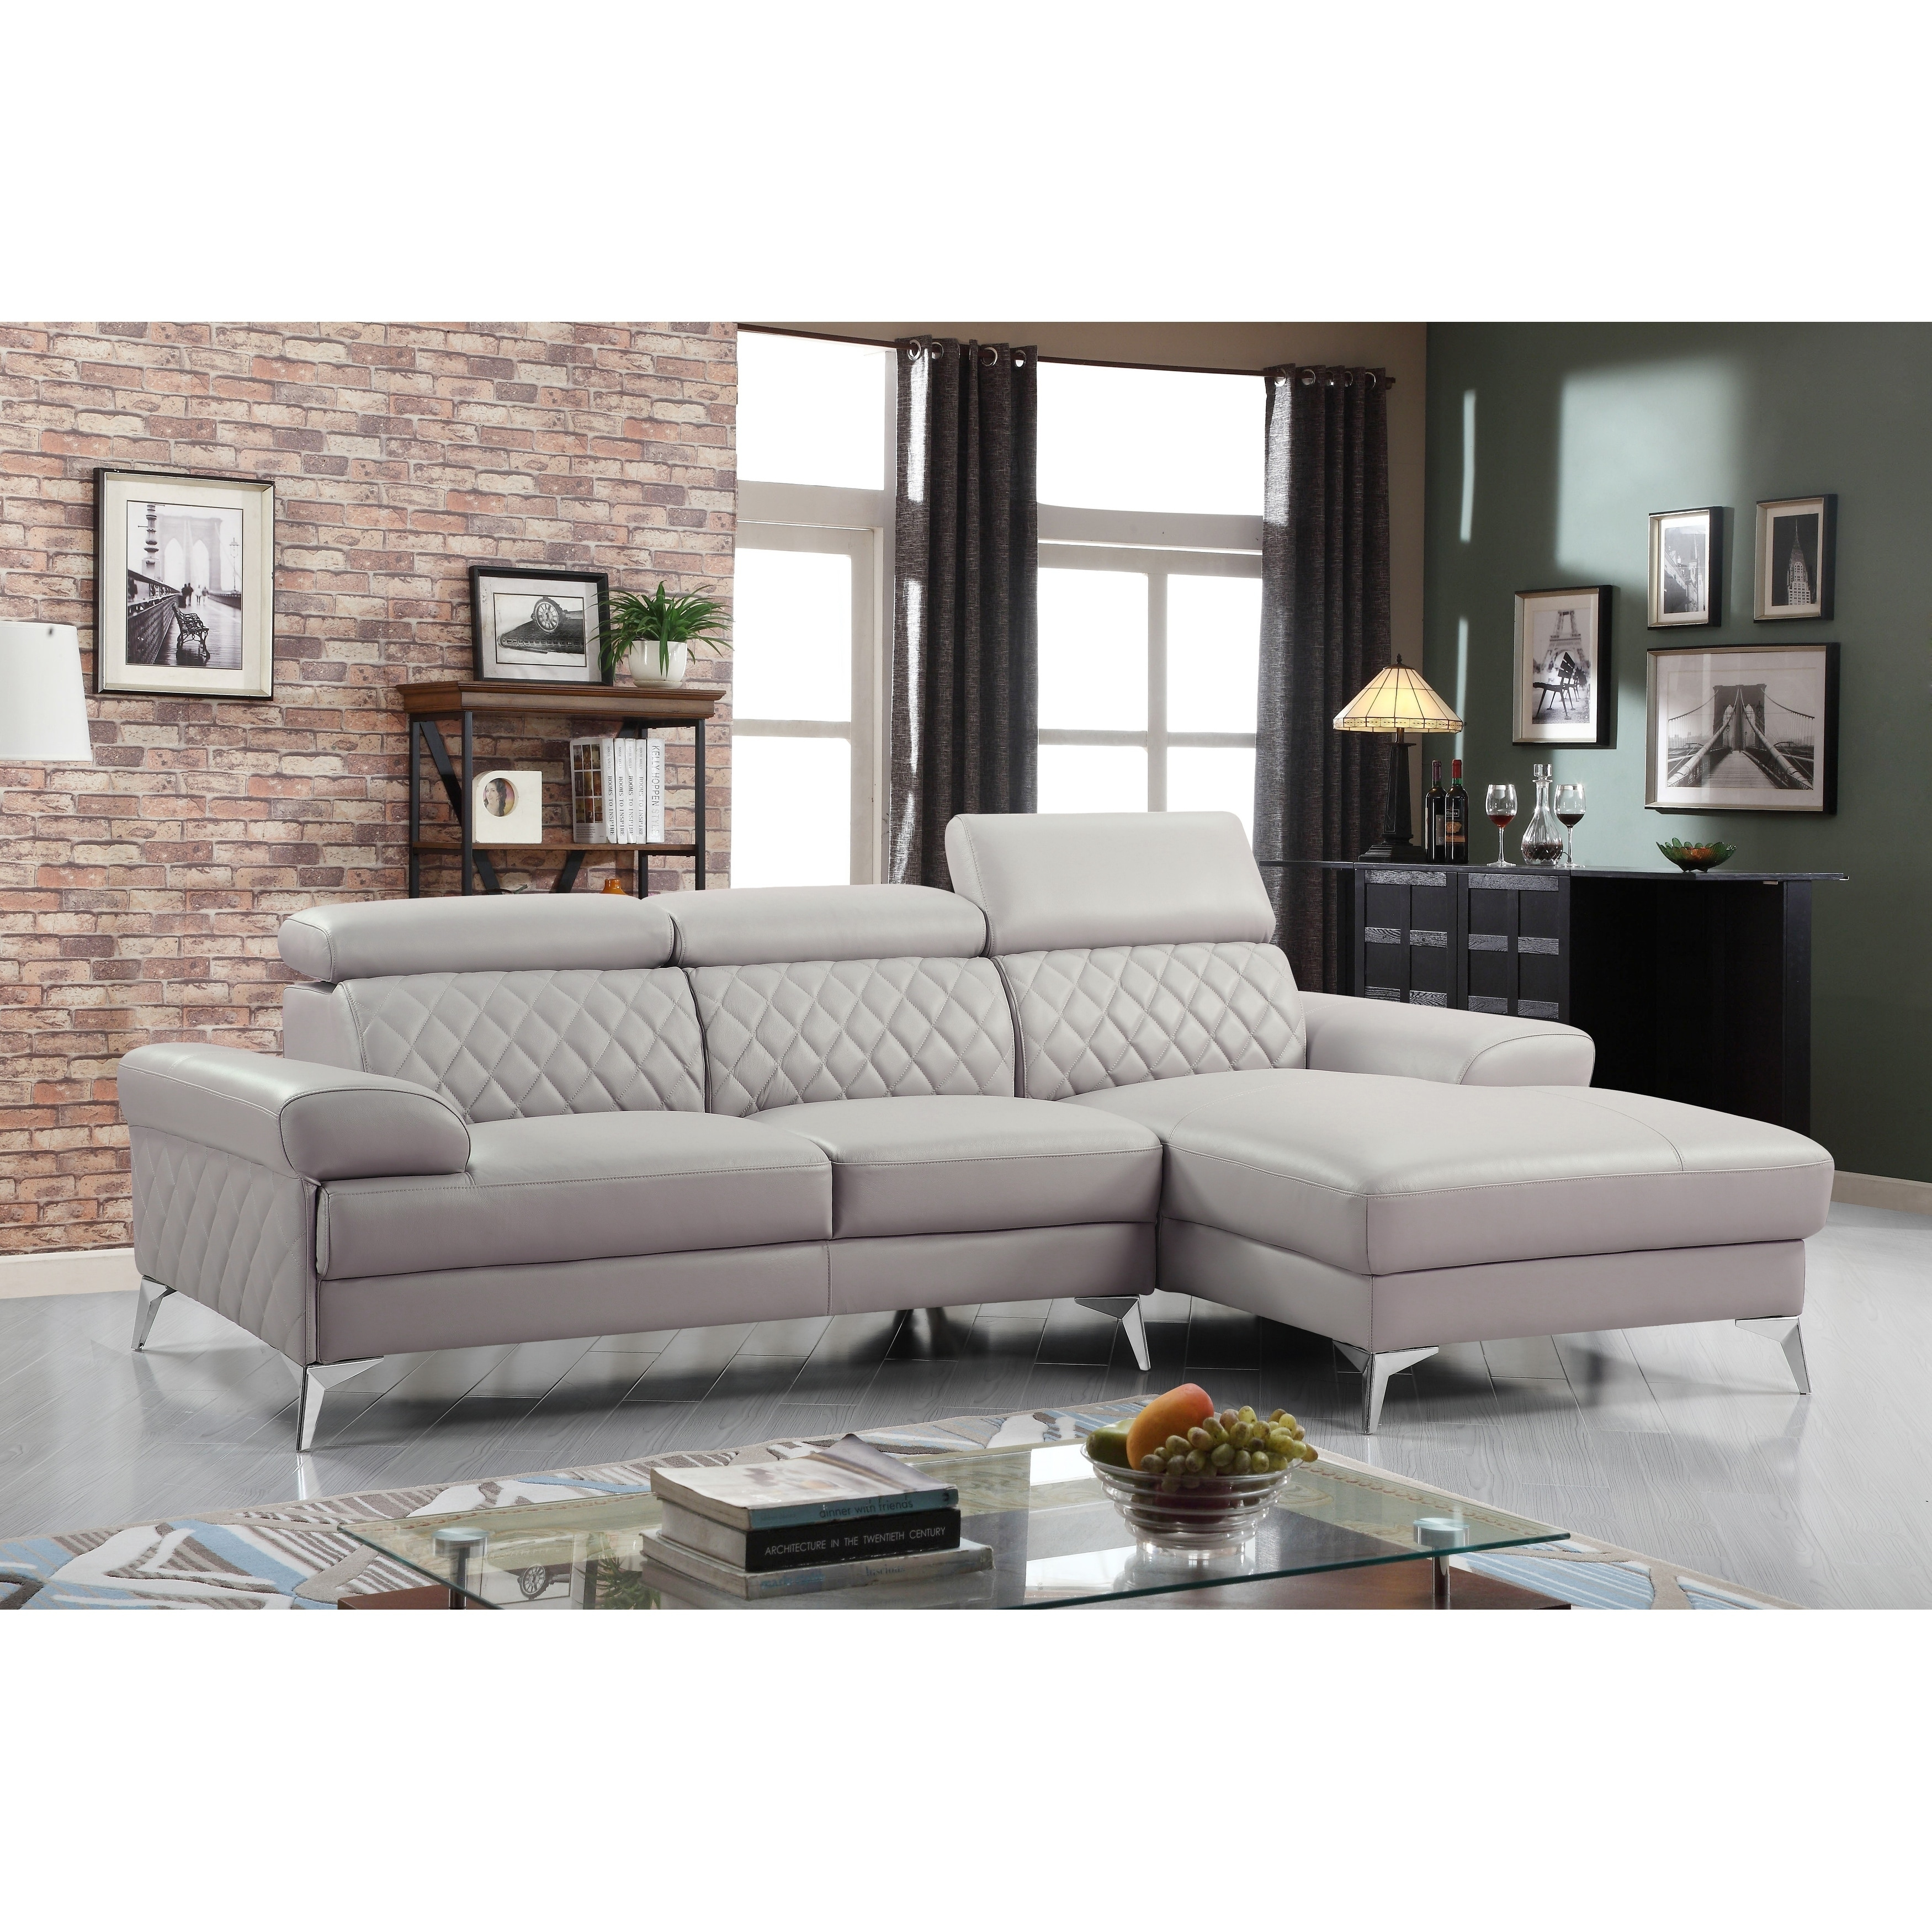 Grey Leather Sectional Sofas Online At Our Best Living Room Furniture Deals